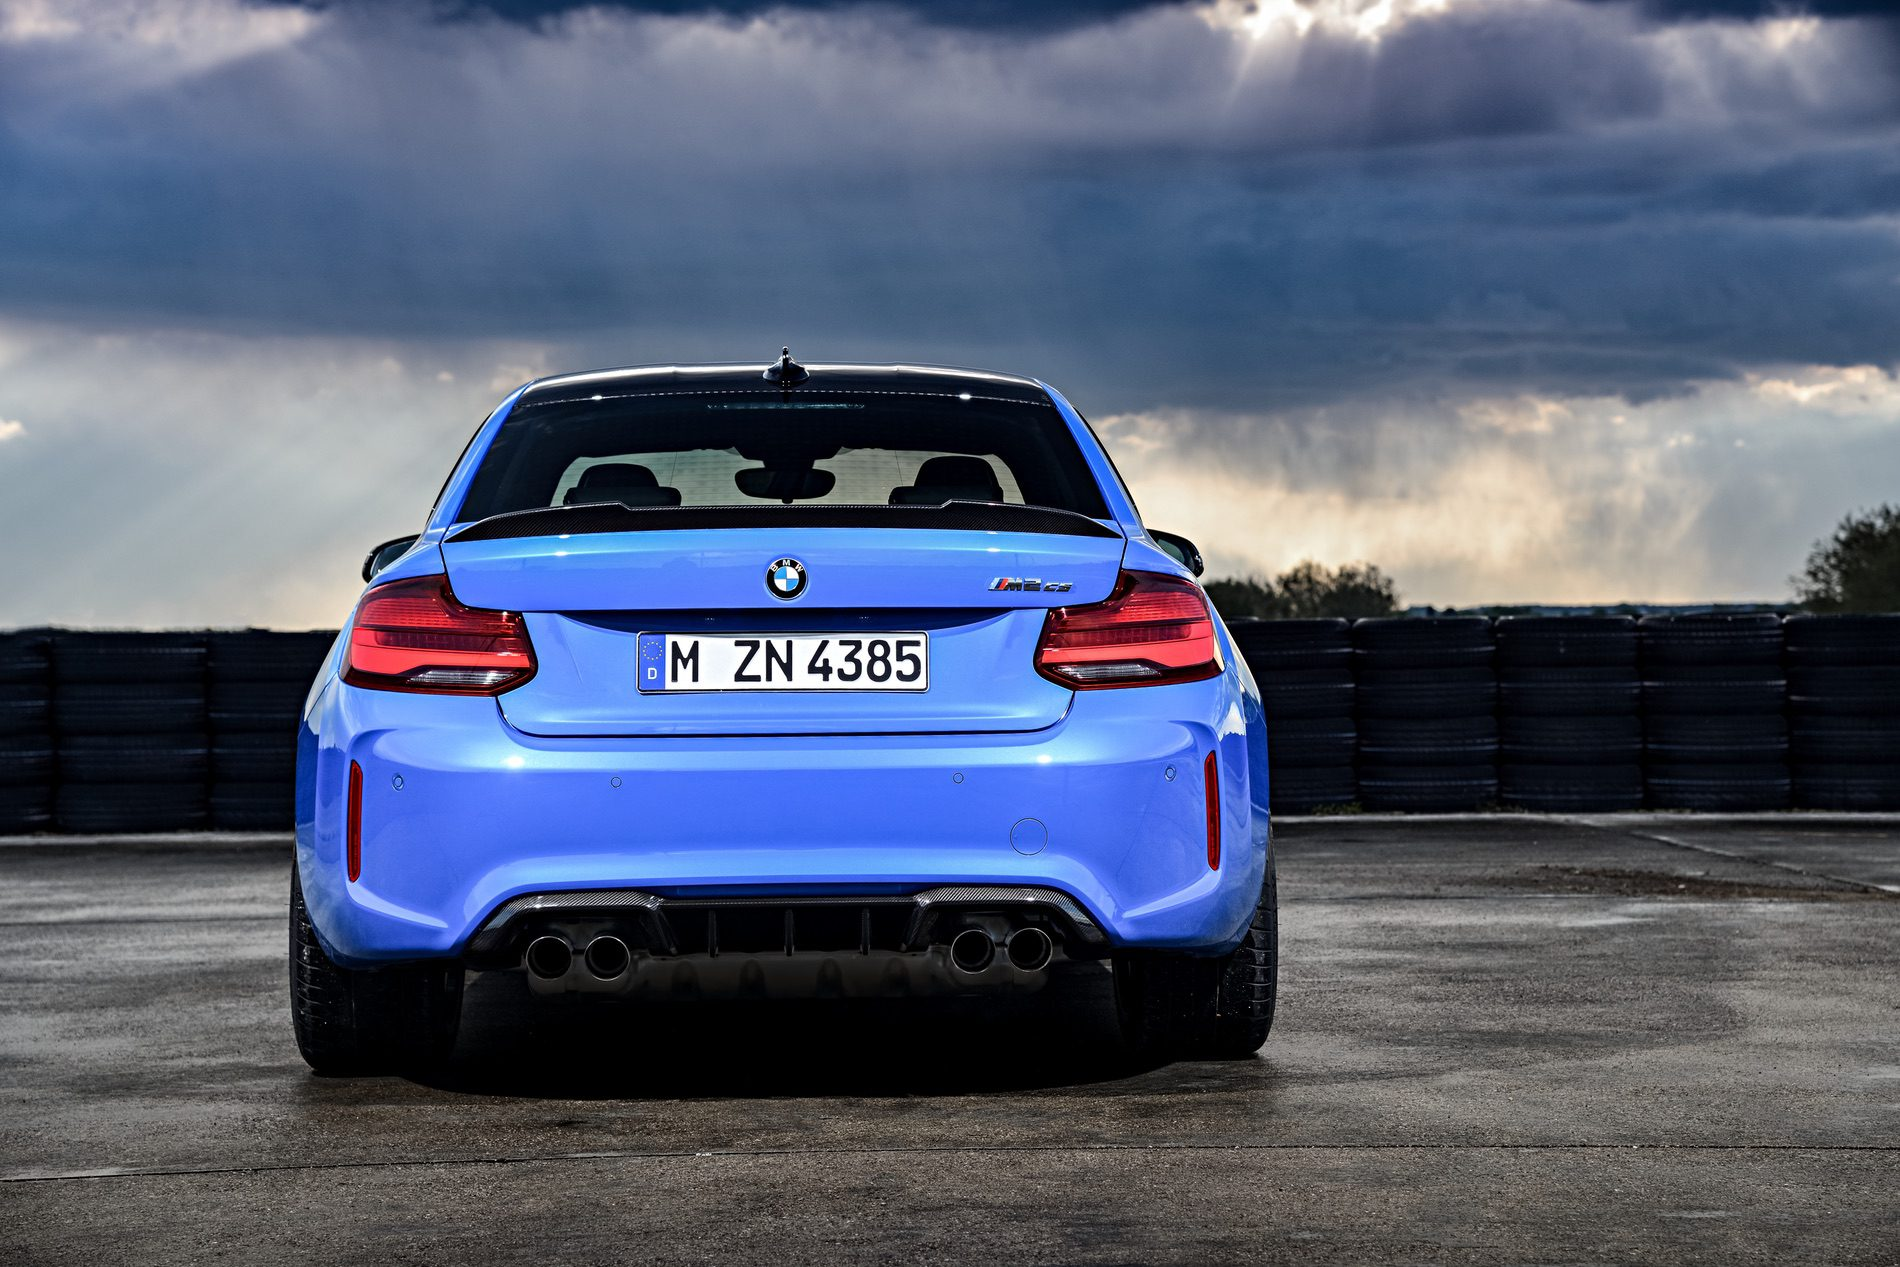 2021 BMW M2 CS Misano Blue 101